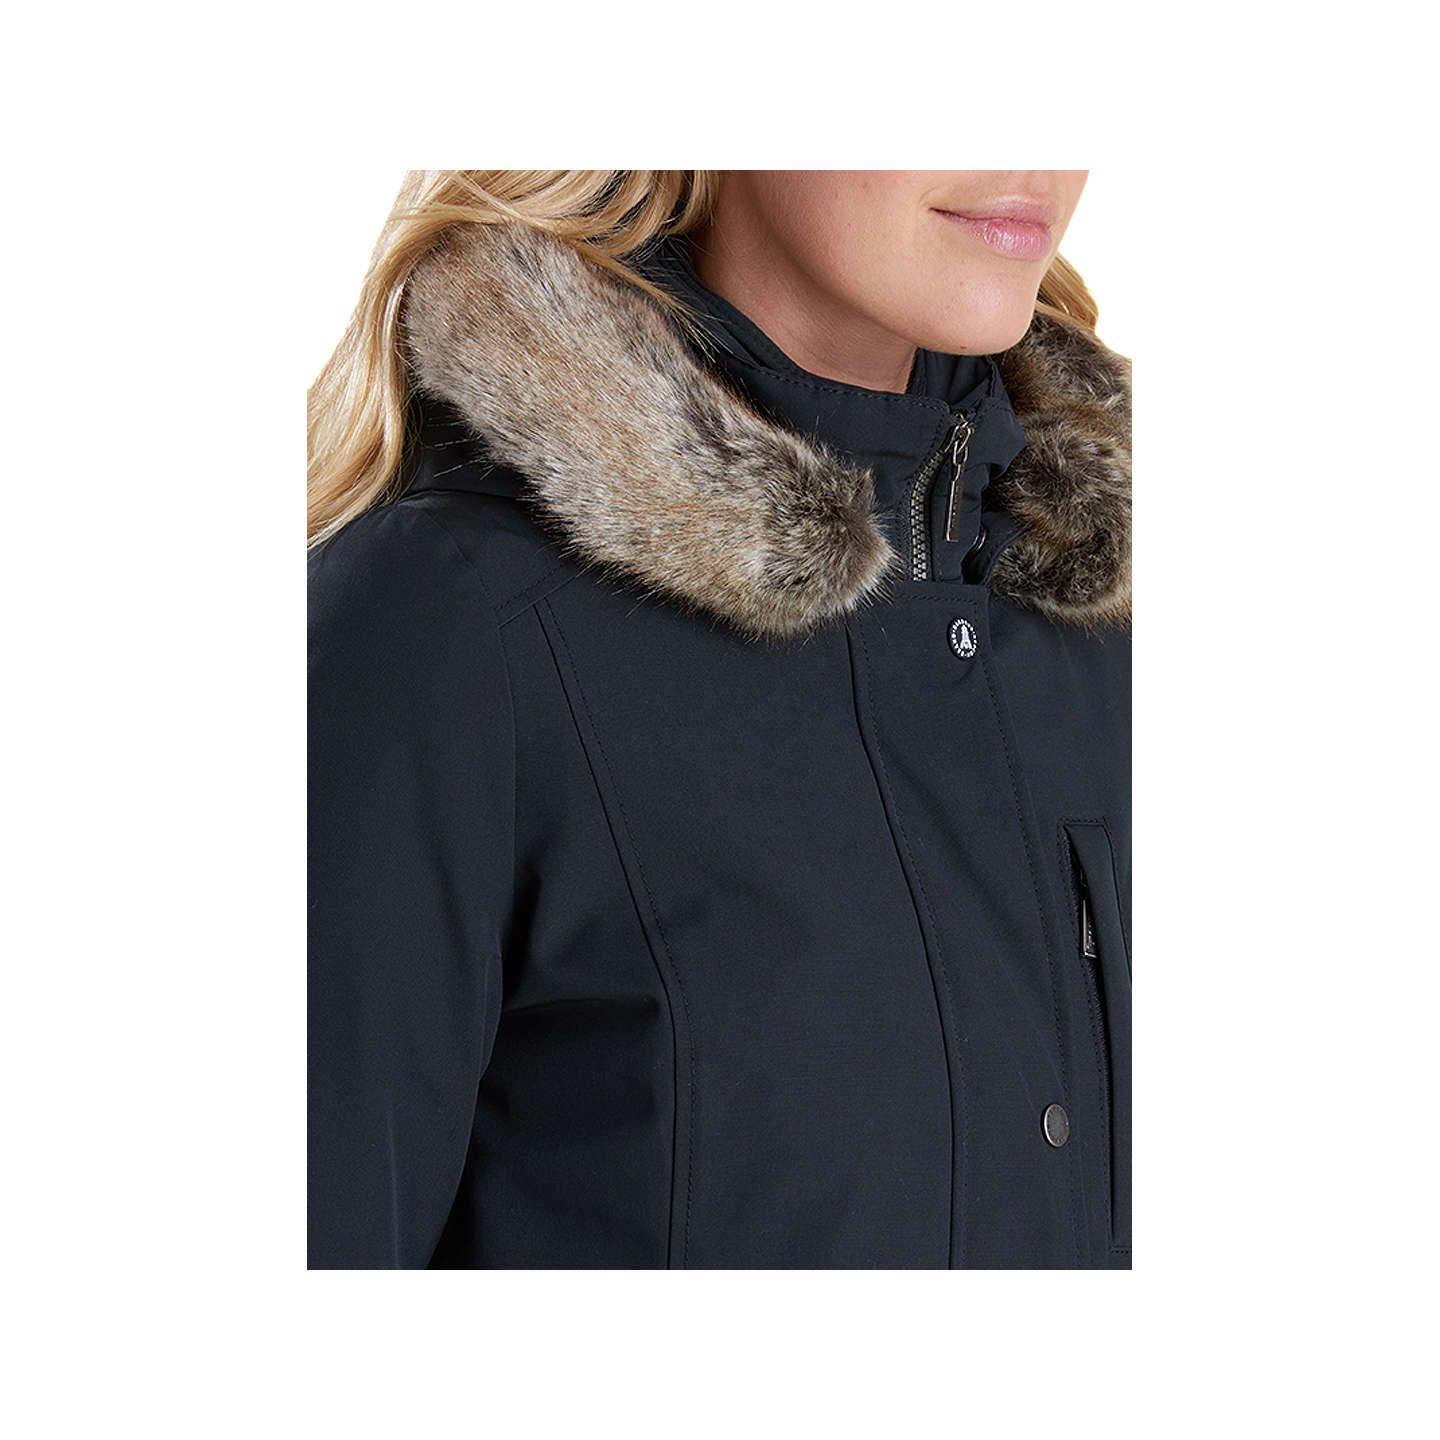 ad1a0c34a06 Barbour Epler Waterproof Breathable Hooded Jacket, Black | Cappotto ...